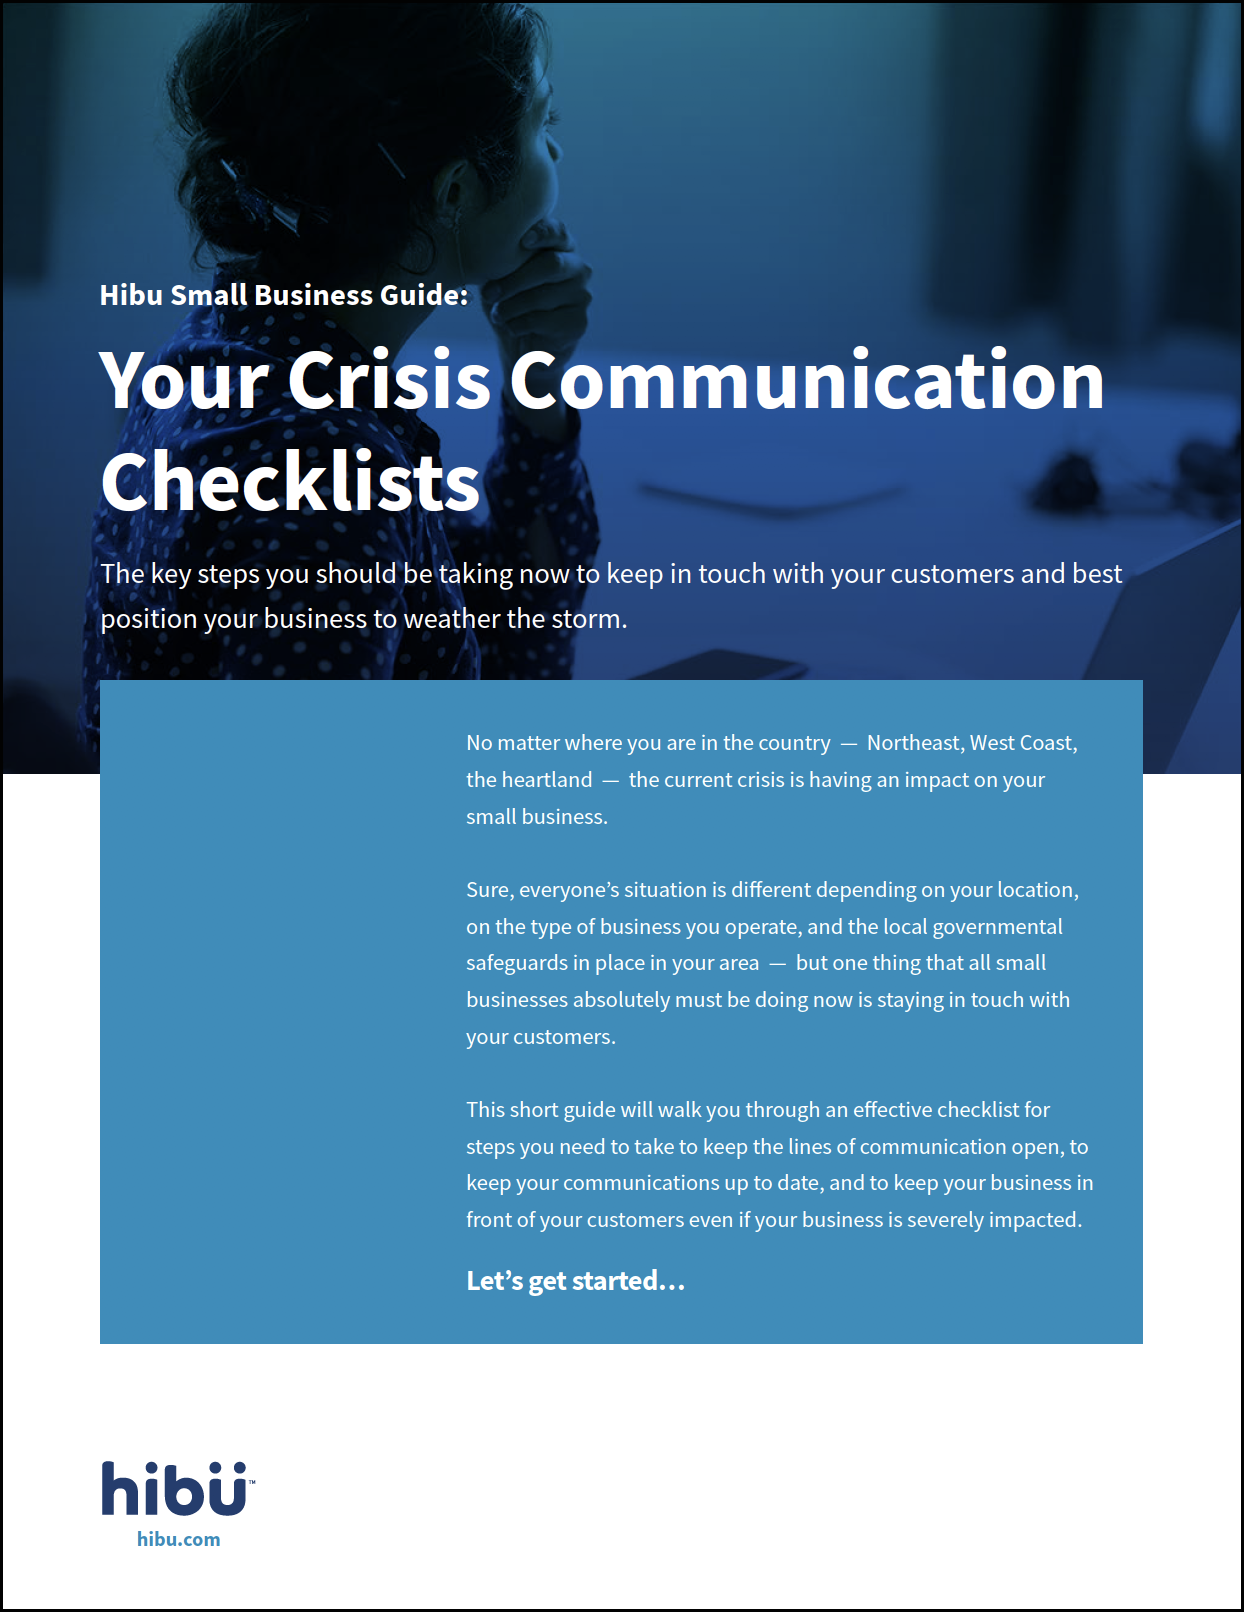 Hibu Small Business Guide: Crisis Communication Checklists